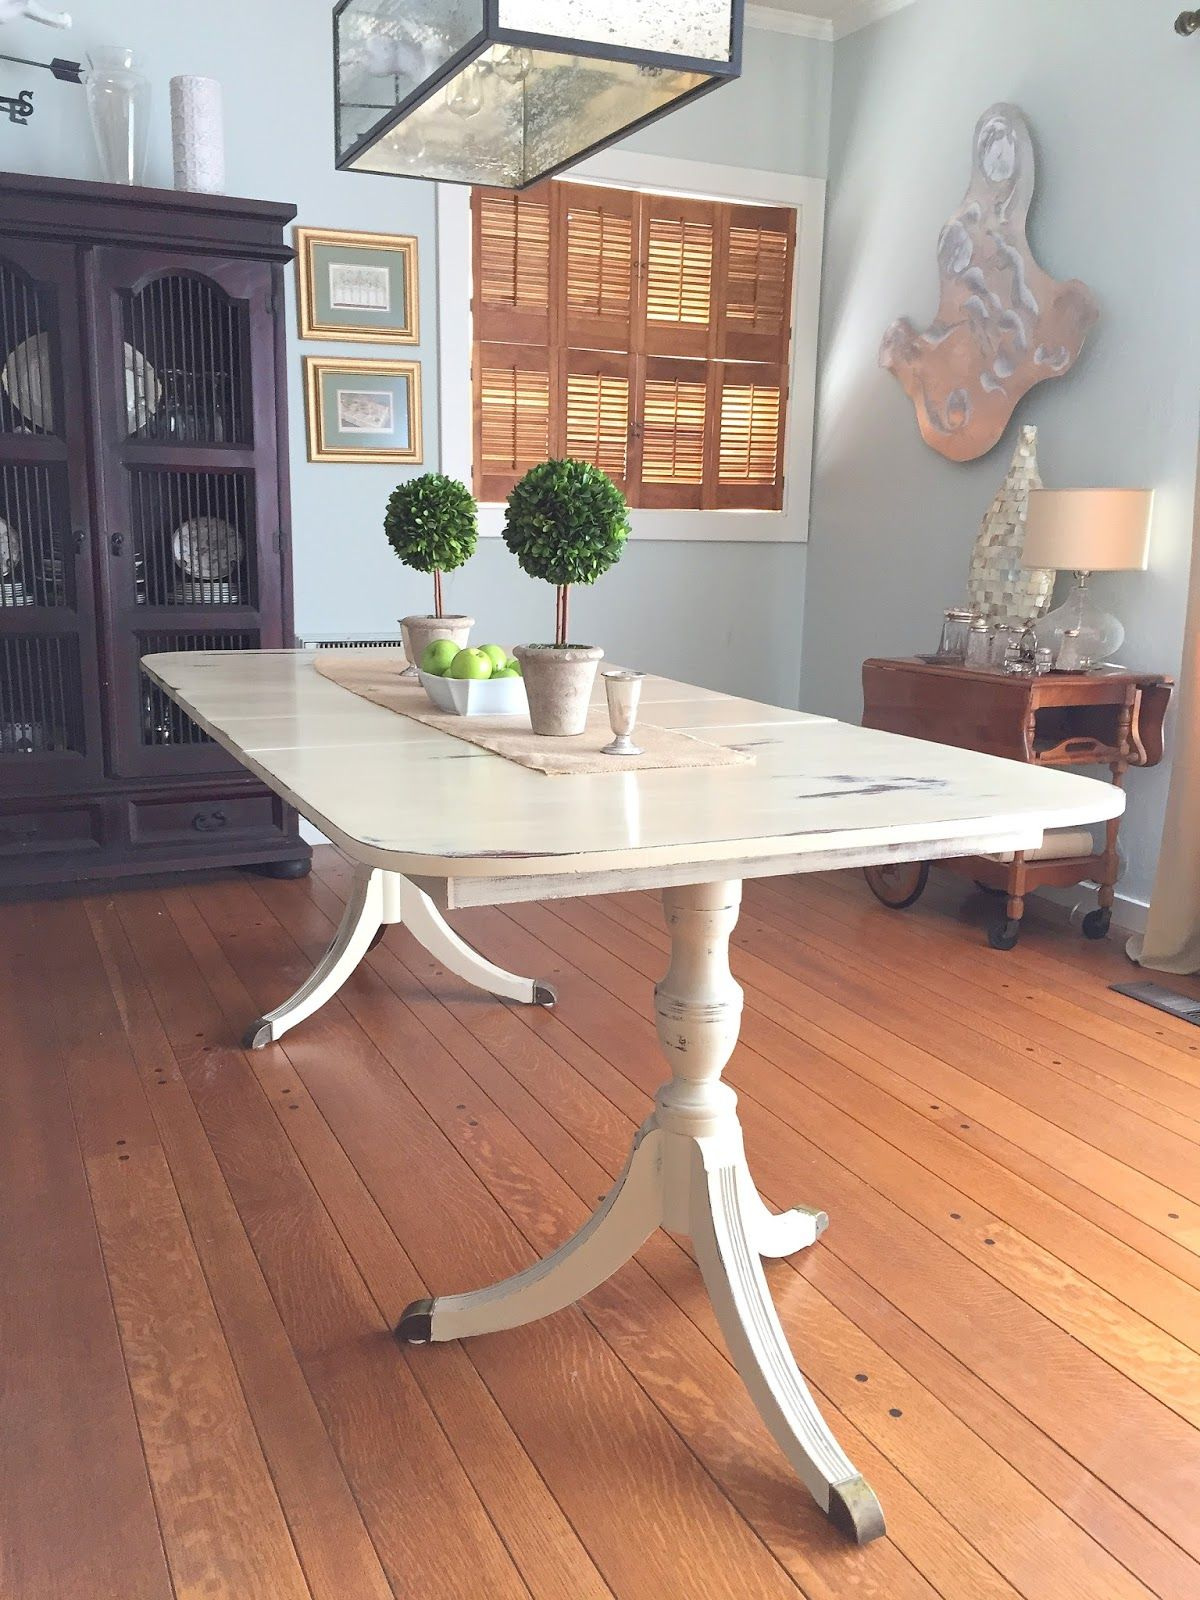 Duncan Phyfe Dining Table Painted With Annie Sloan Chalk Paint Part 89